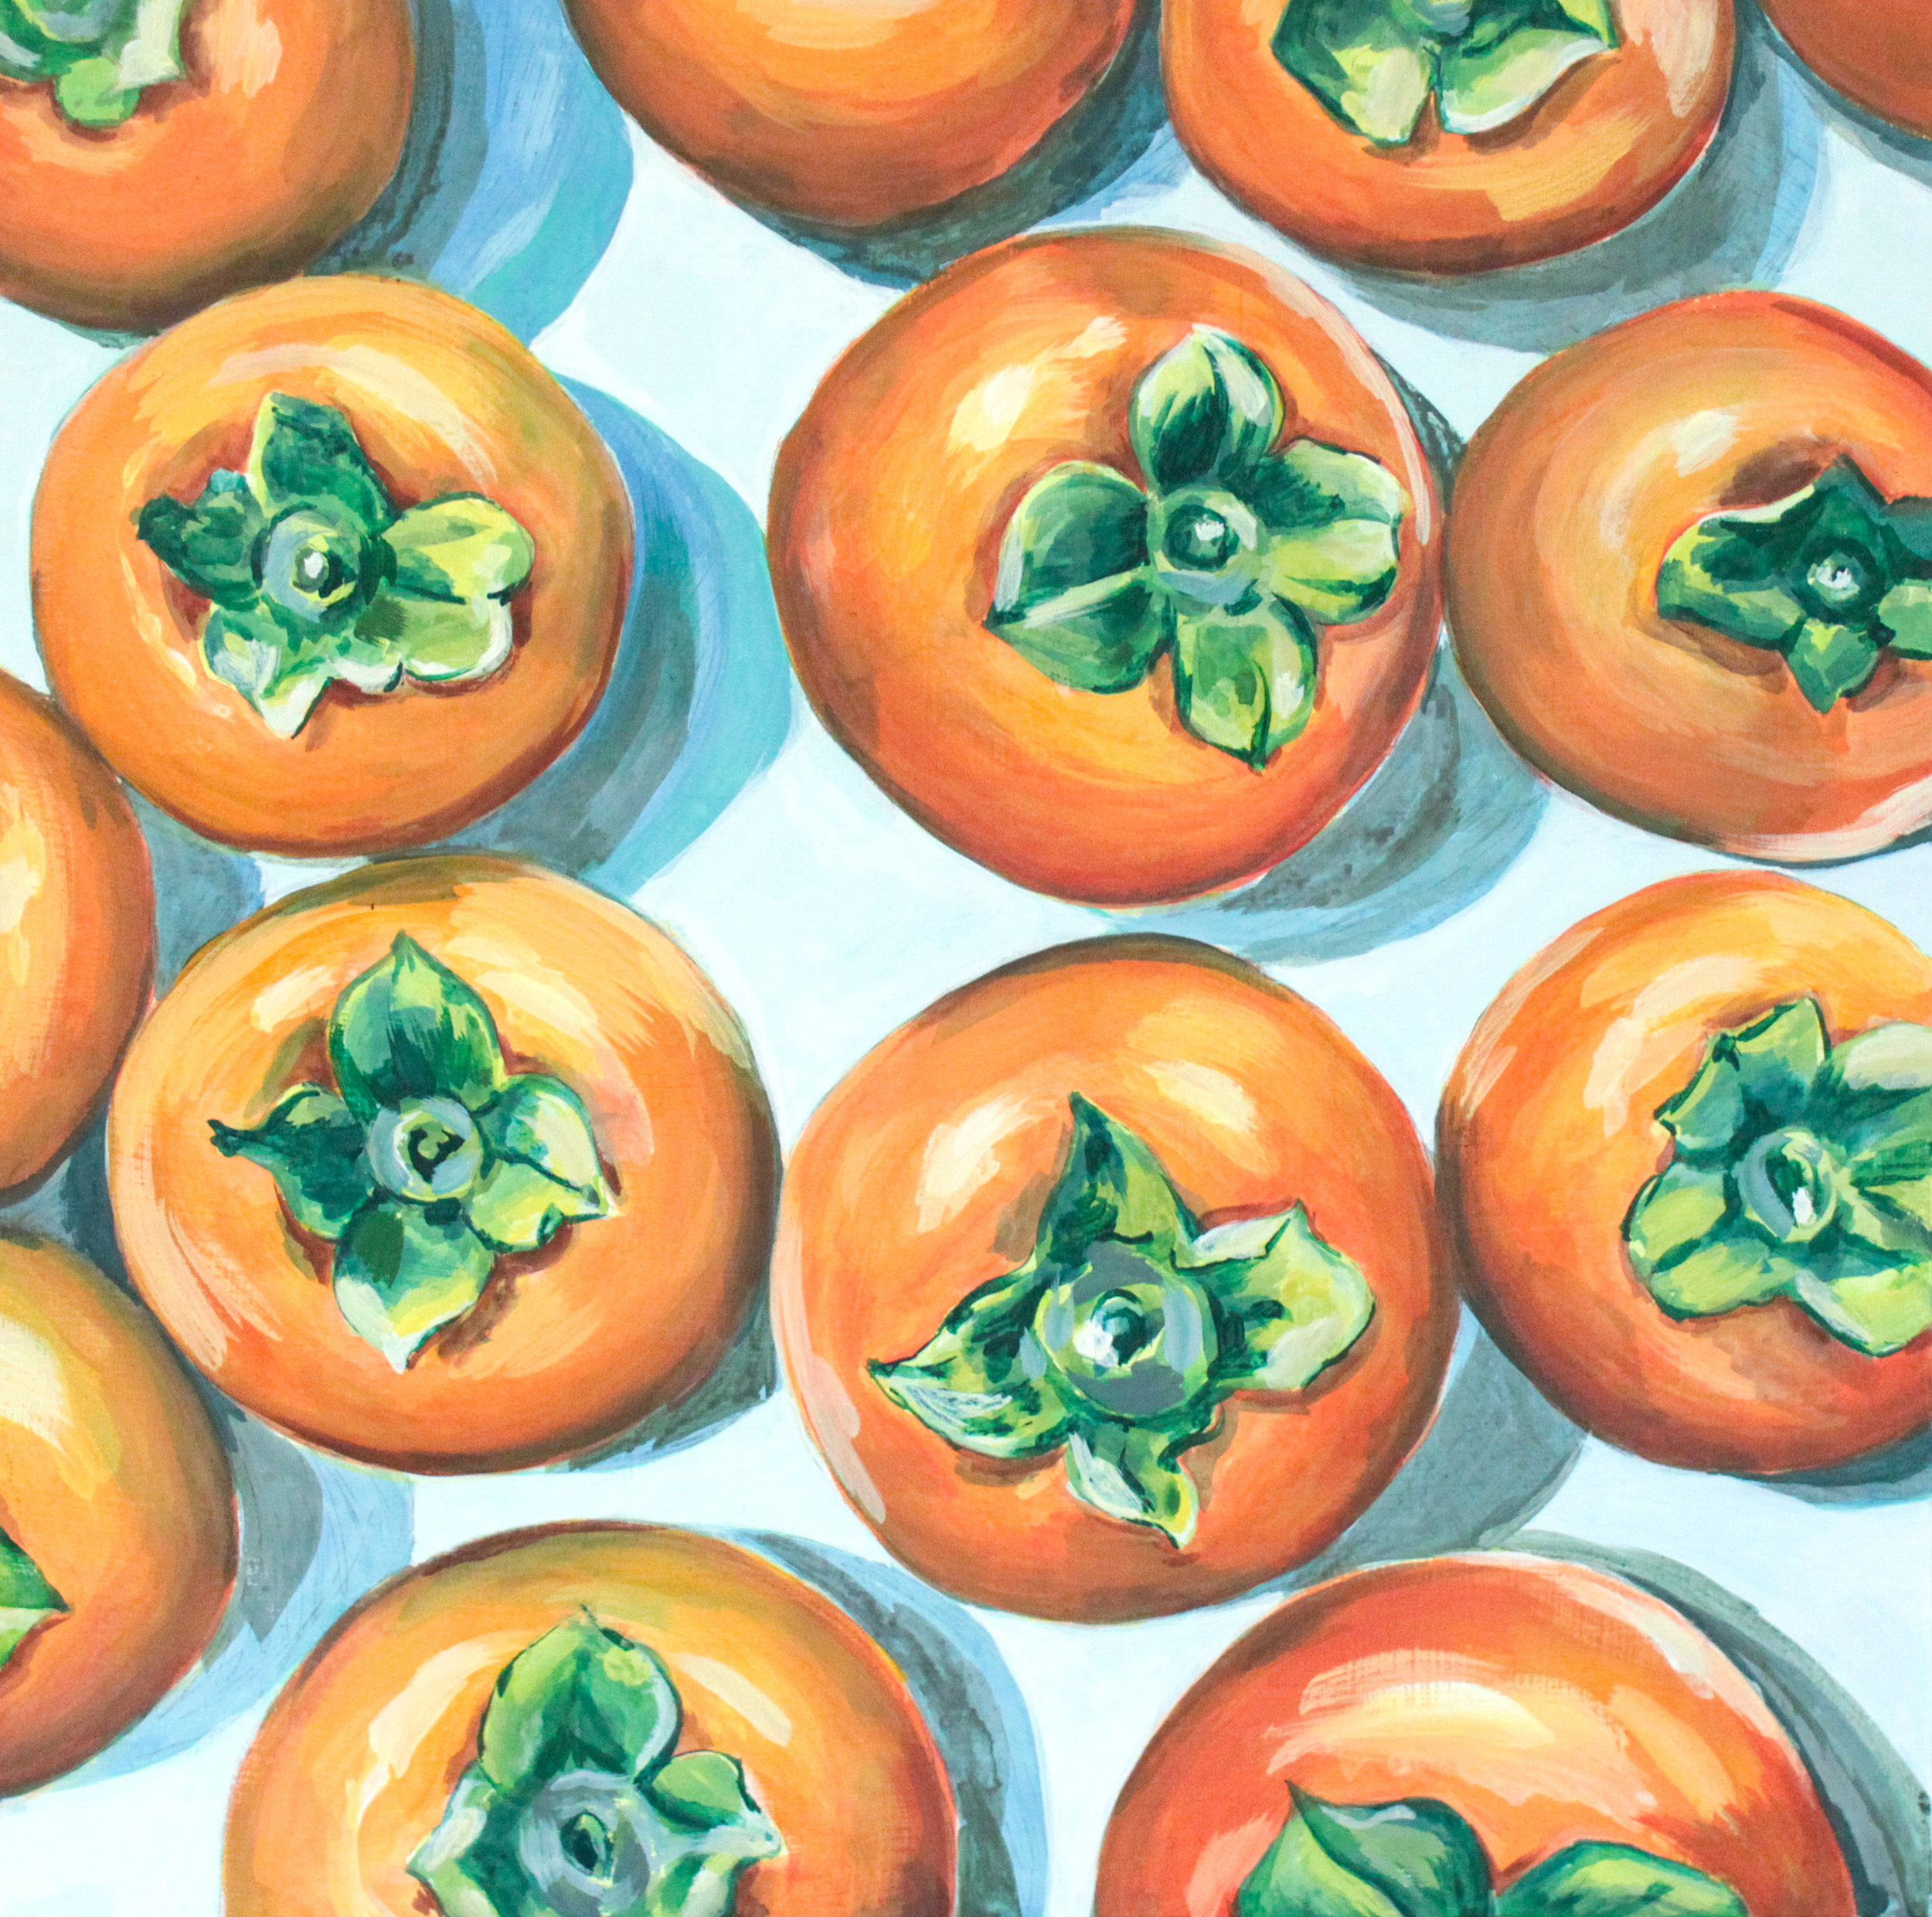 "Persimmons + Coppa - 20"" x 20"" gouache on canvas, framed $800Inspired by the Persimmons & Coppa @ Babas on Cannon"